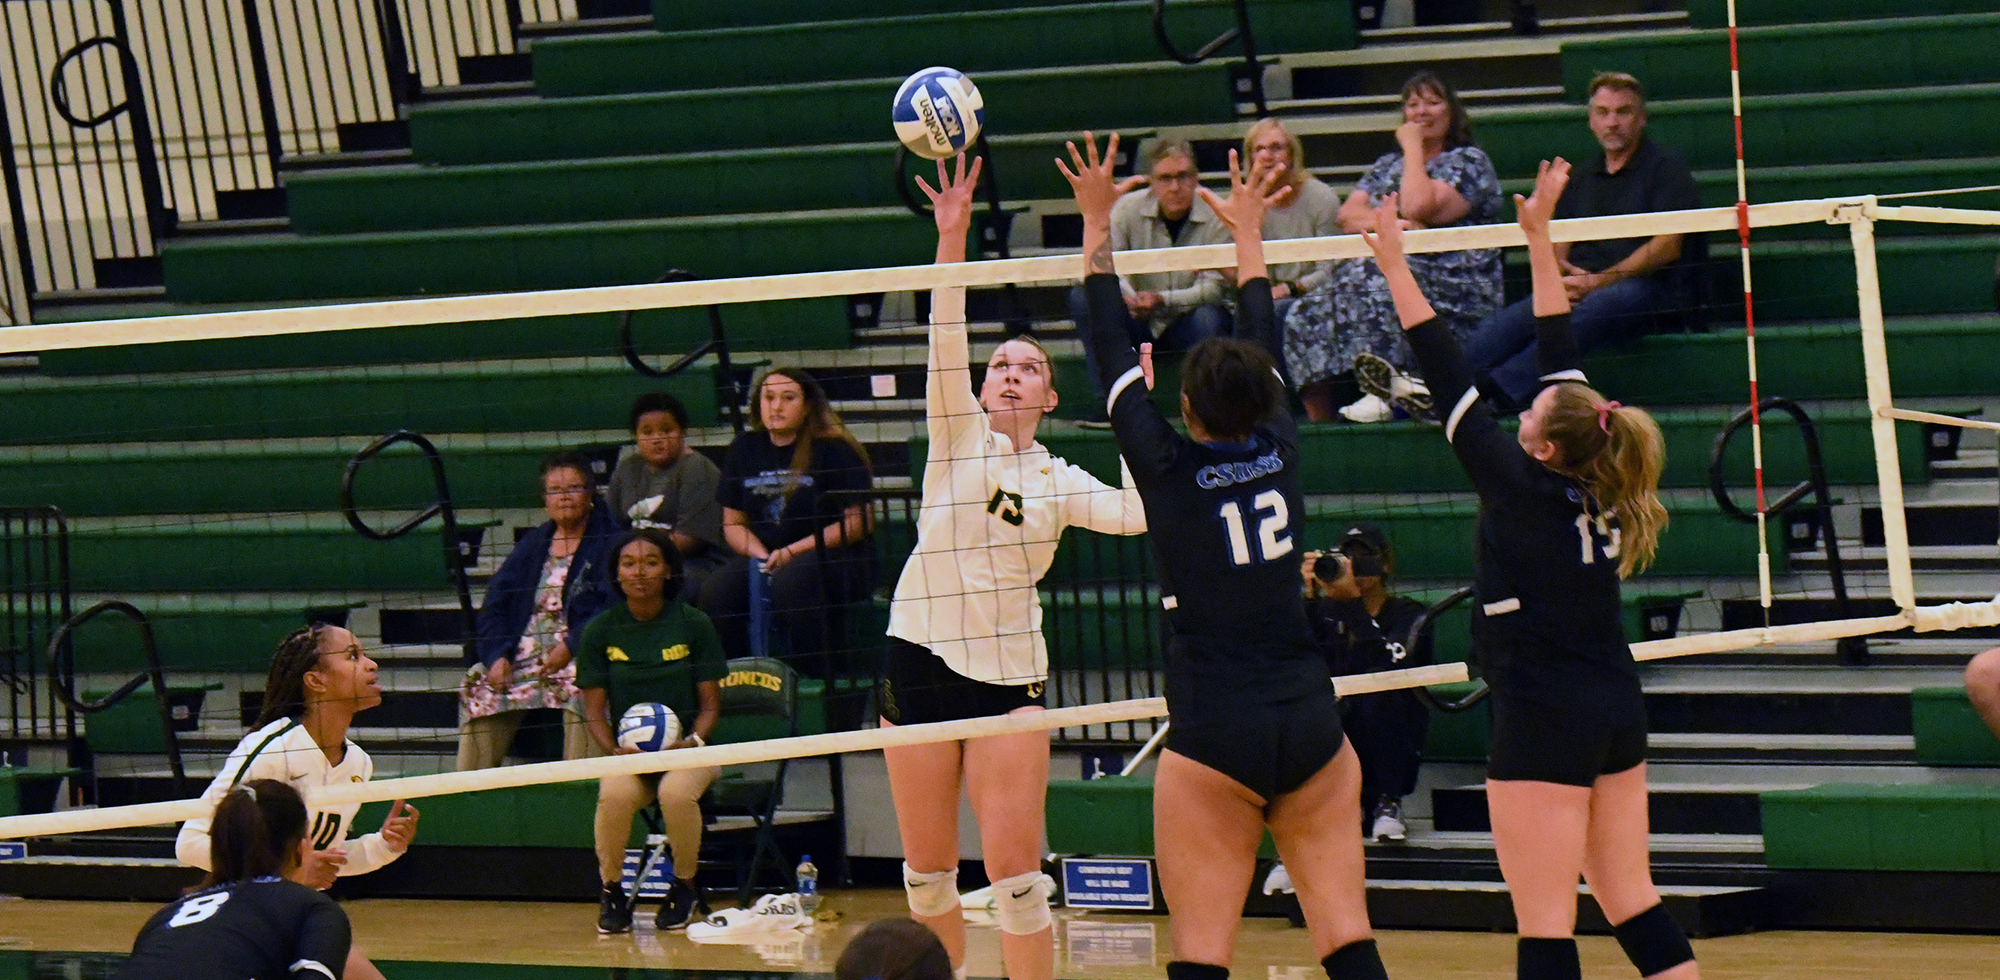 Andrea Bosnic 2018 Volleyball Cal Poly Pomona Athletics